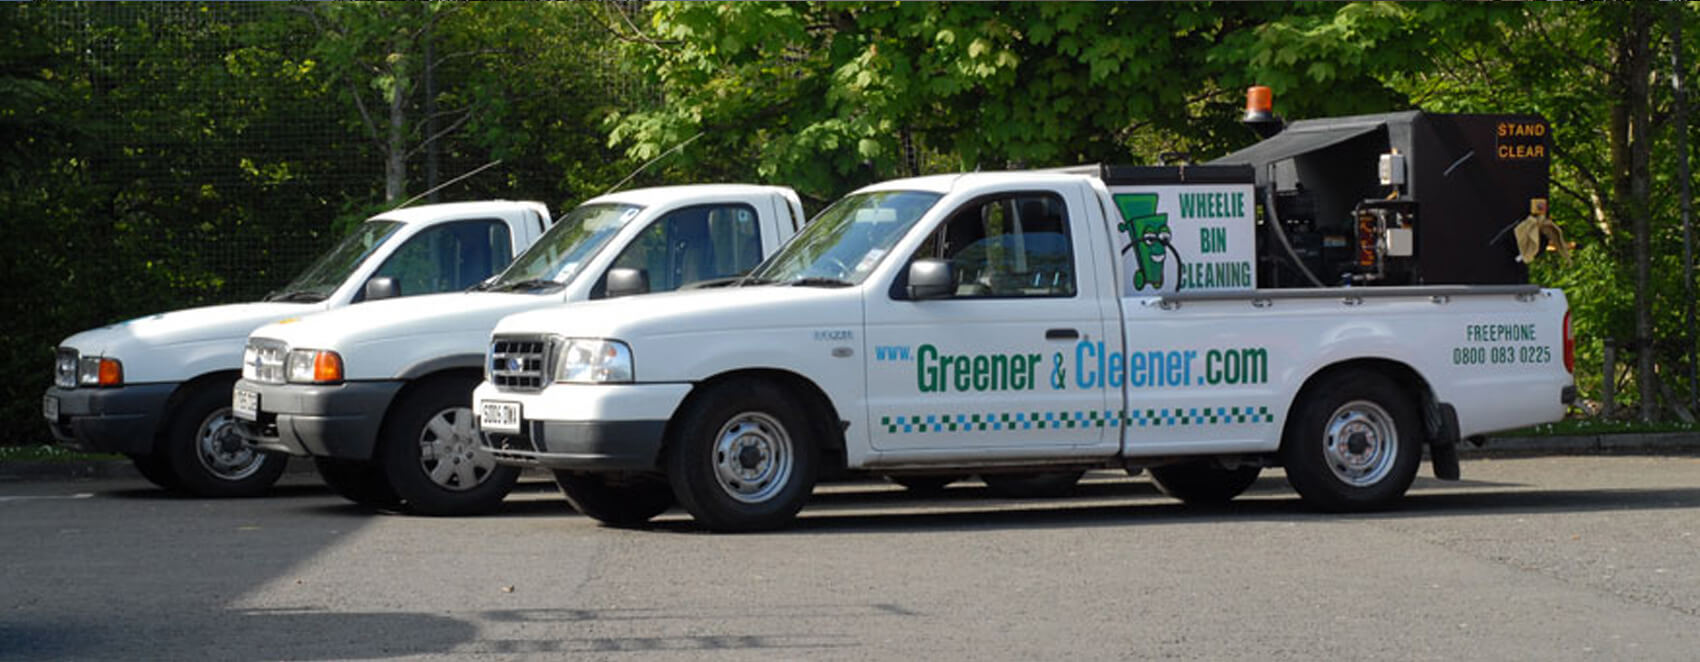 greener cleener glasgow bin cleaning slide1